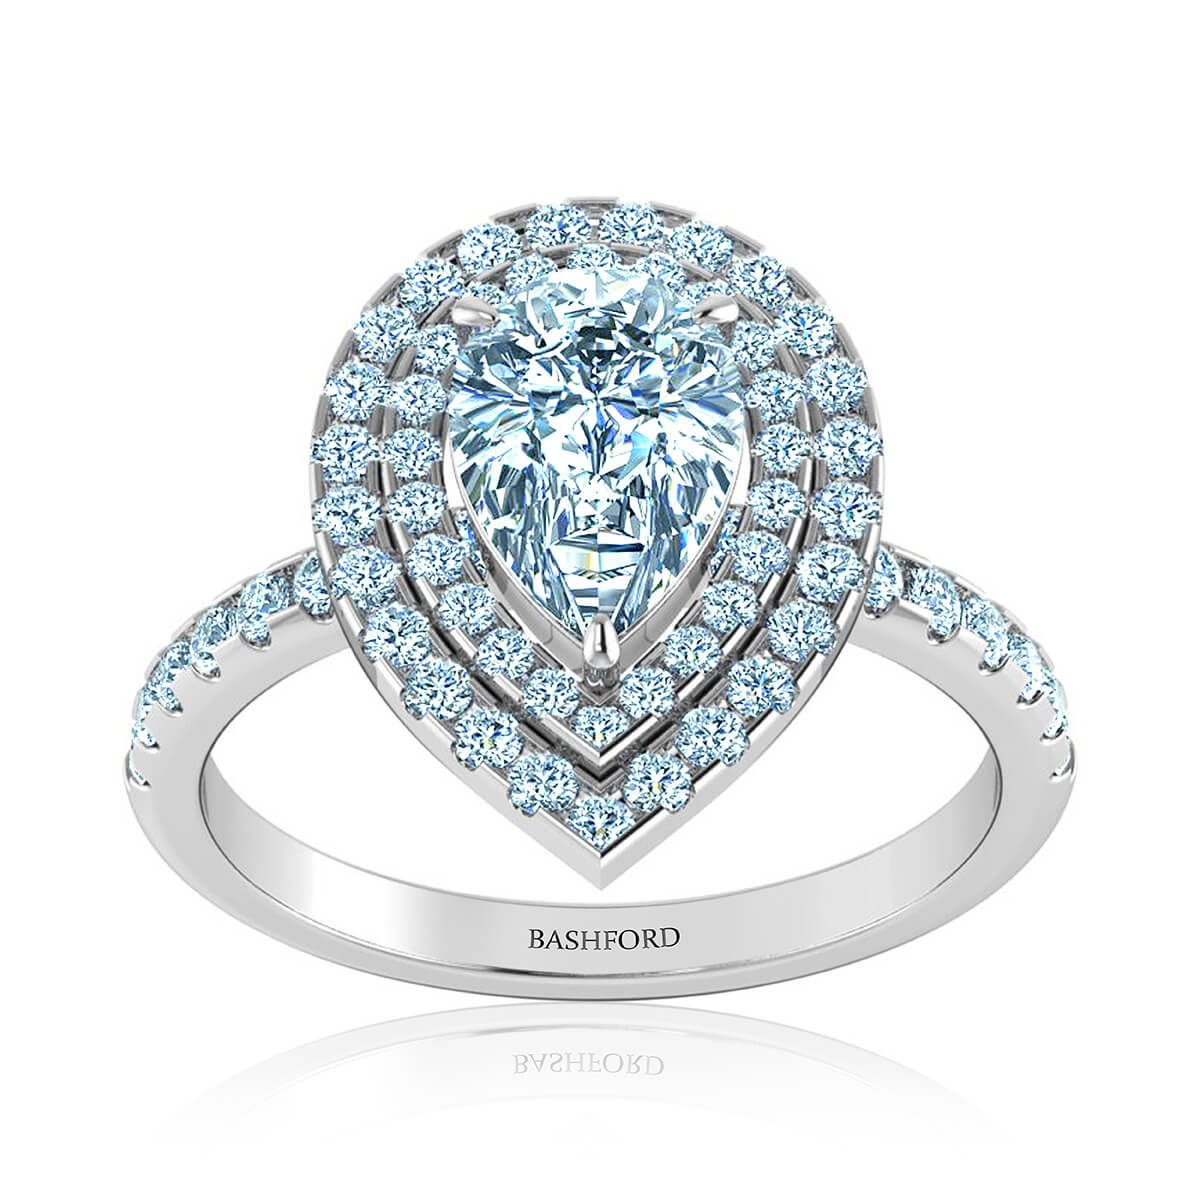 Amalfi Halo Diamond Ring